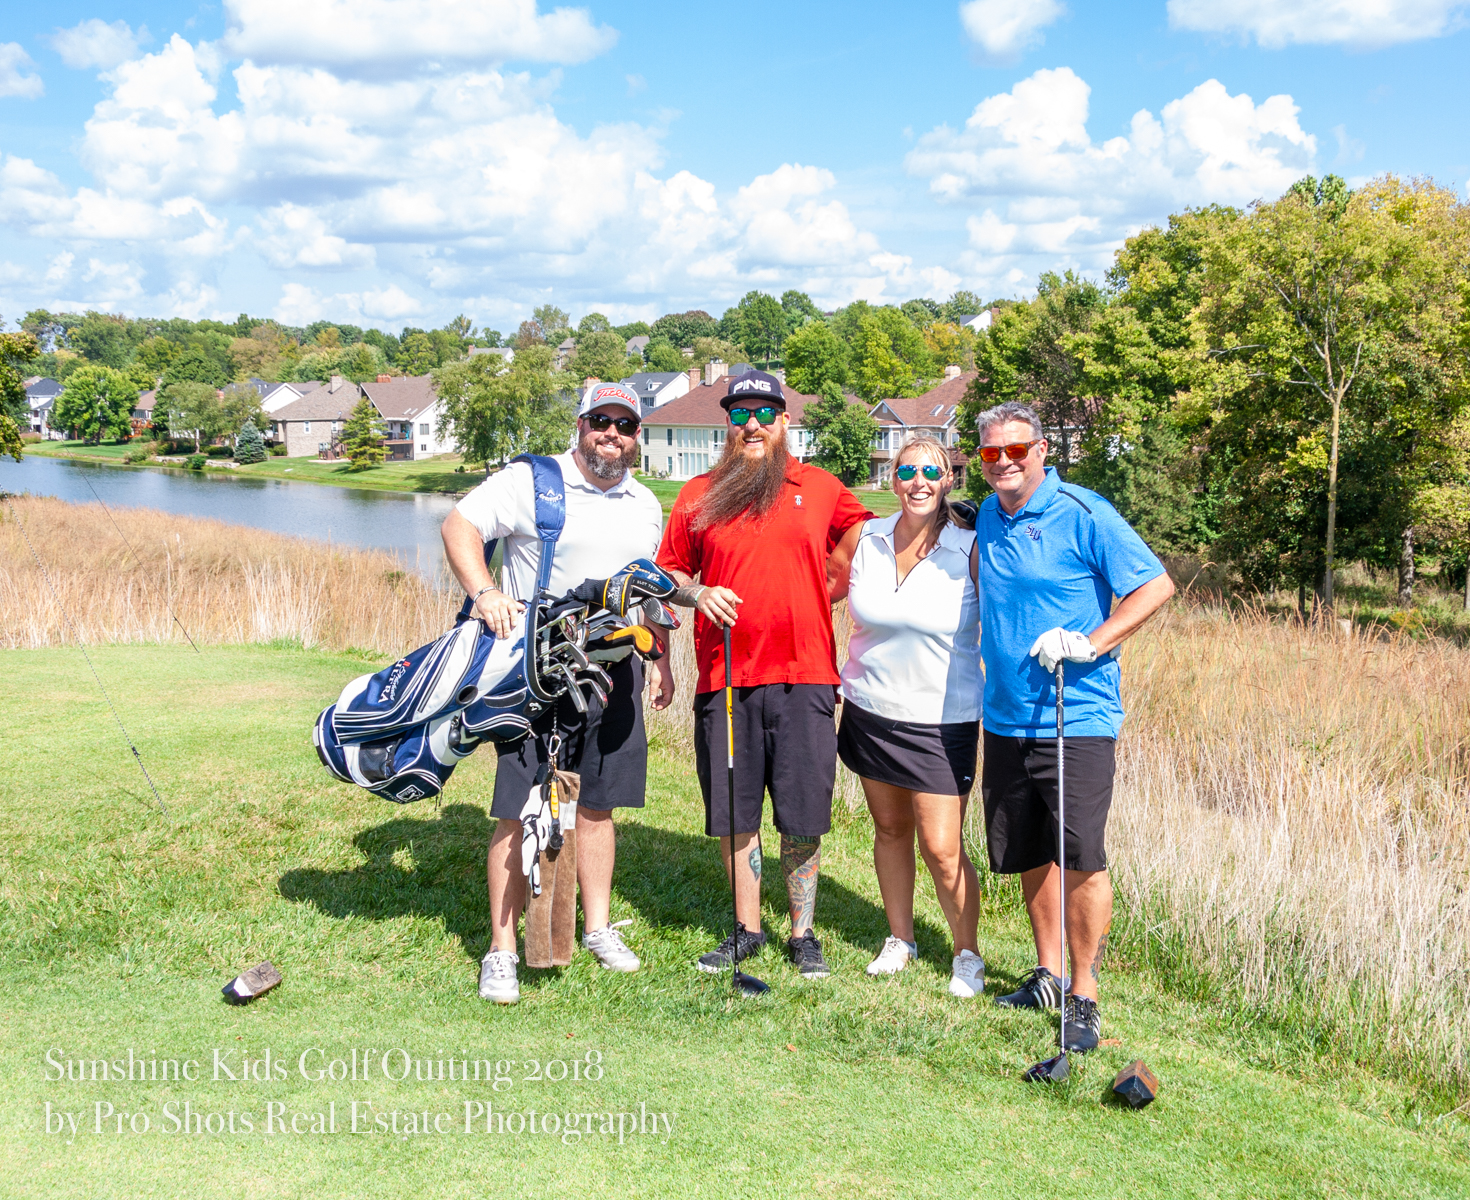 SSK Golf Player Photos-20.jpg